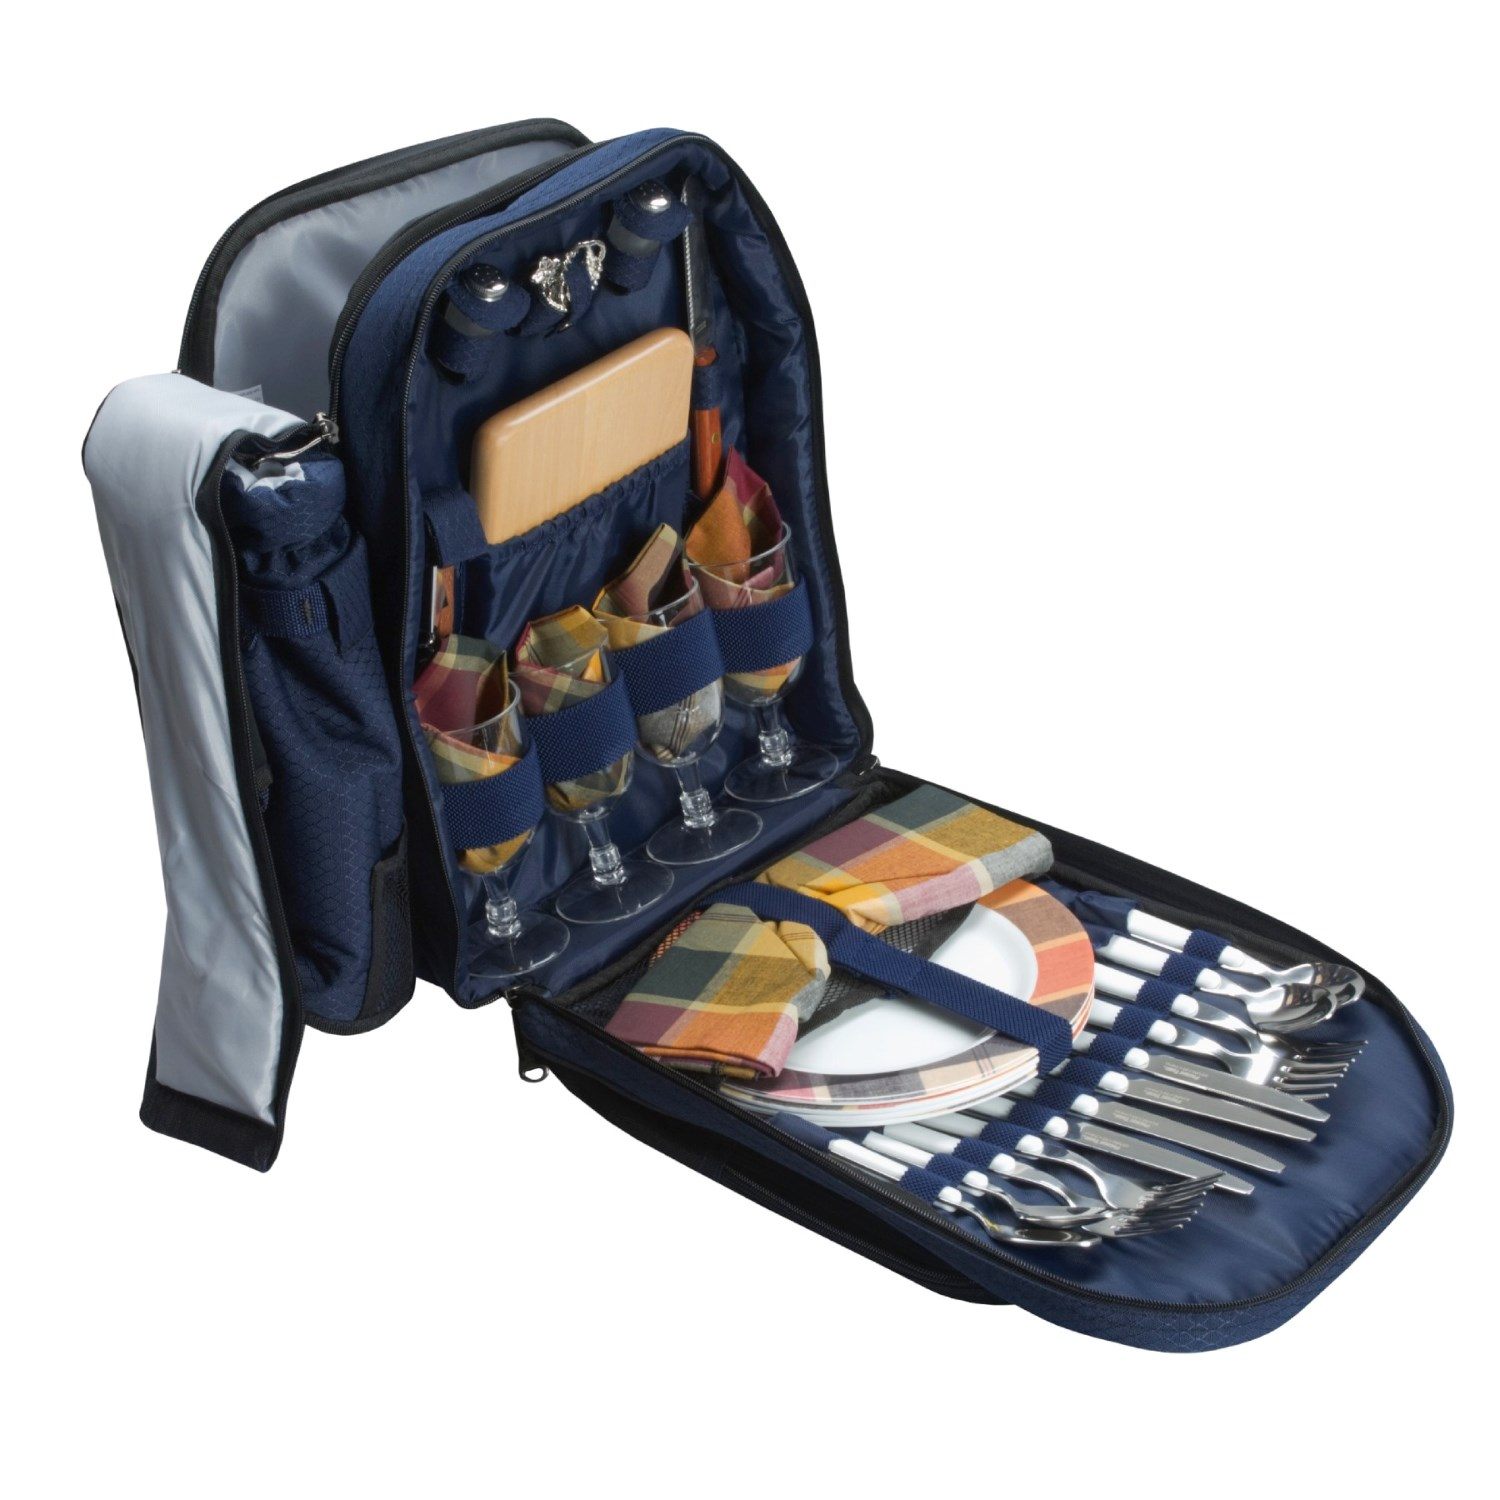 Picnic Backpack Australia Picnic Time Safari Picnic Backpack Four Person 97584